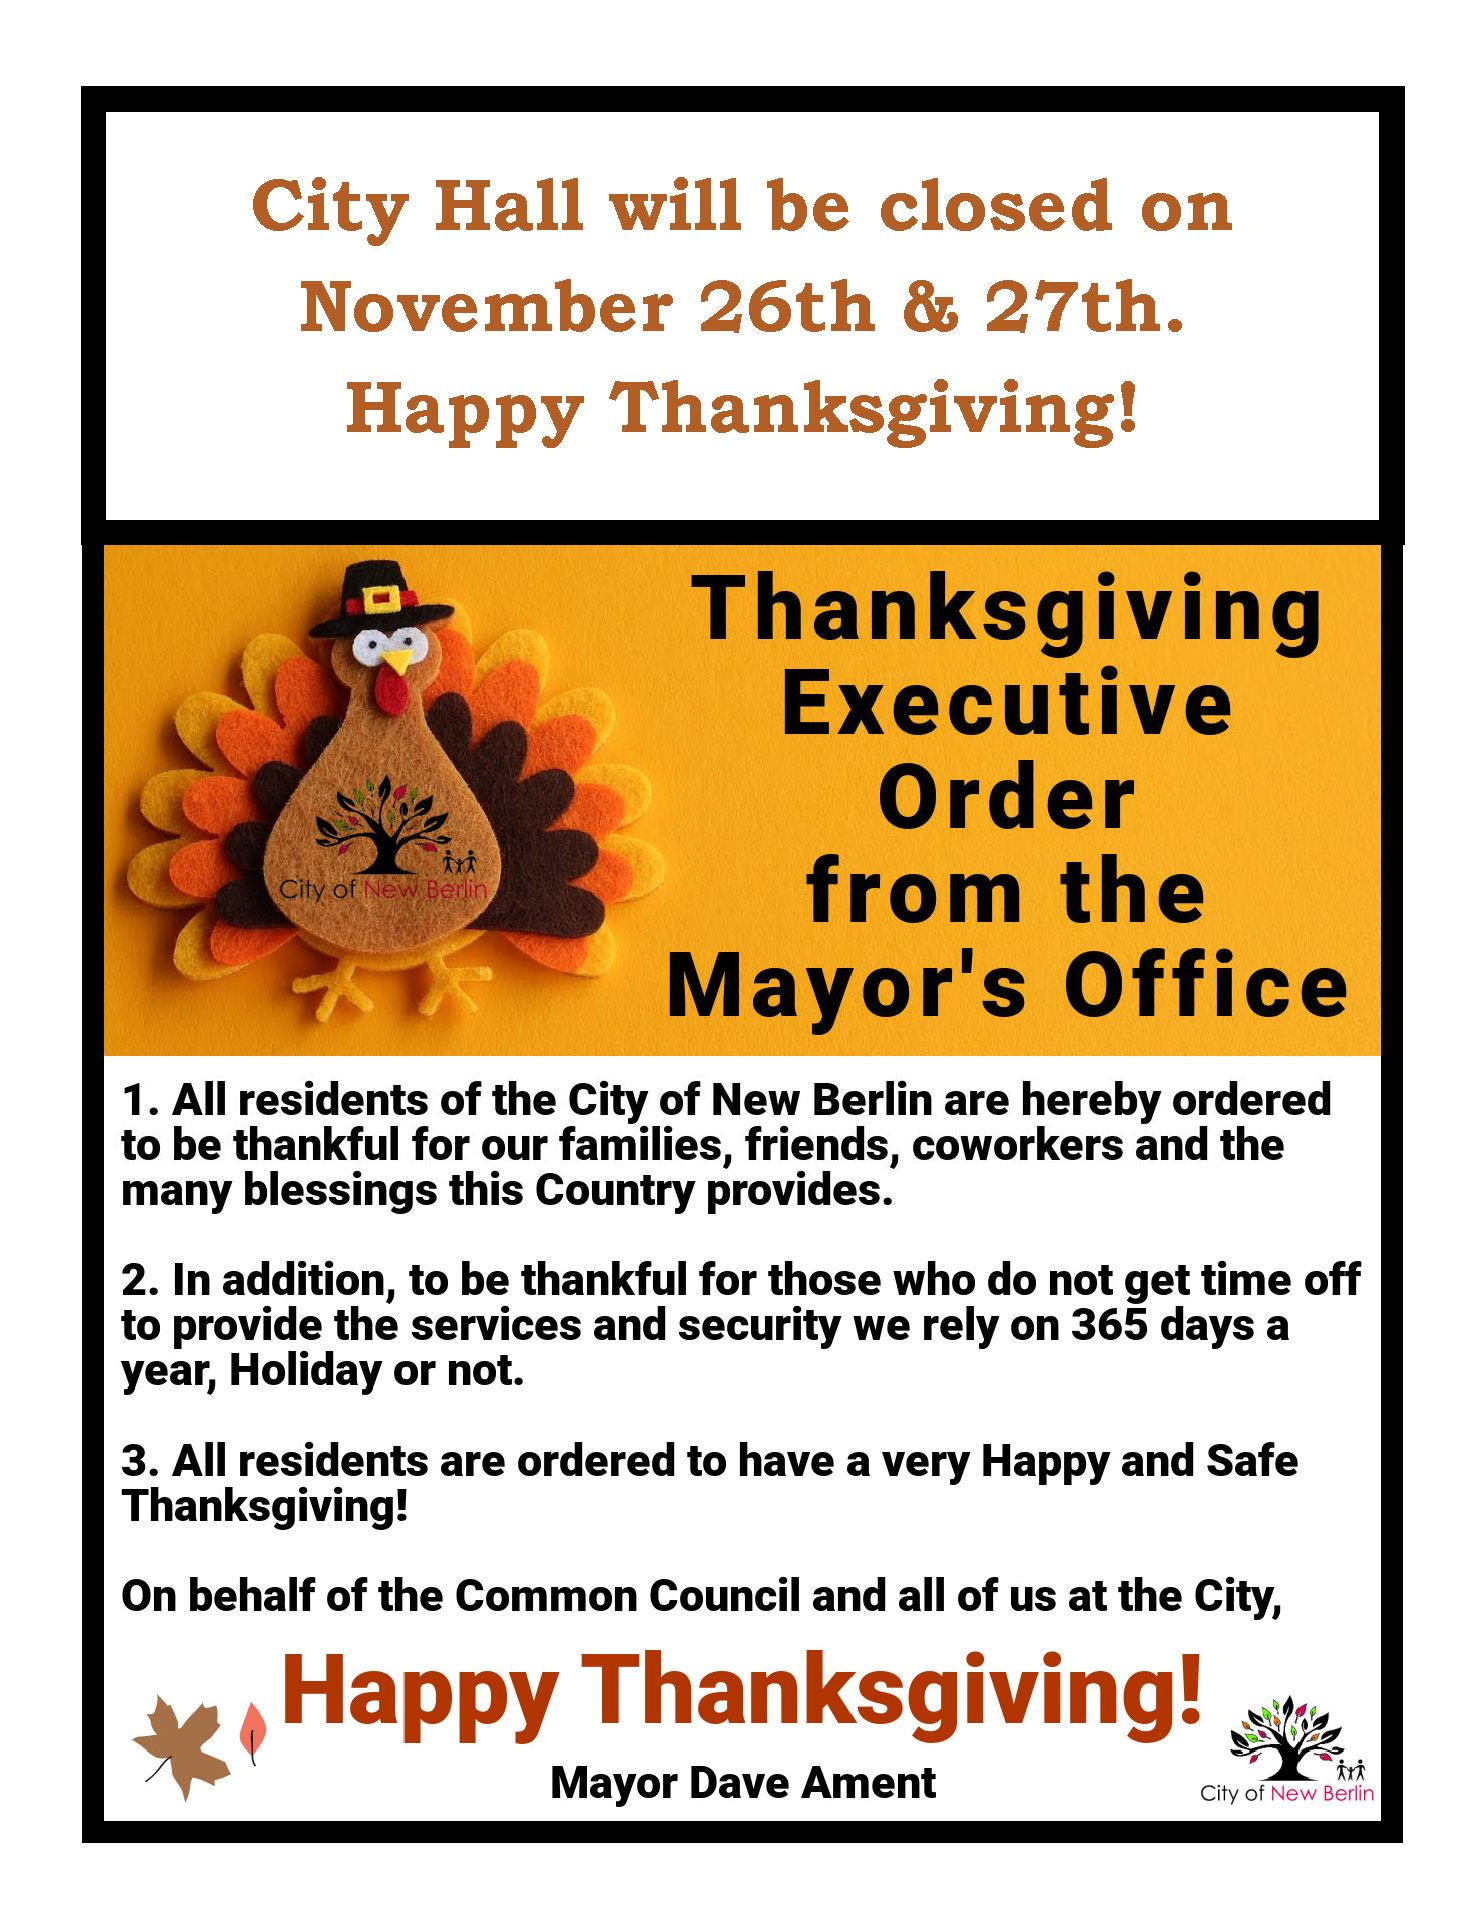 City Hall Closure & Thanksgiving Executive Order from the Mayor's Office